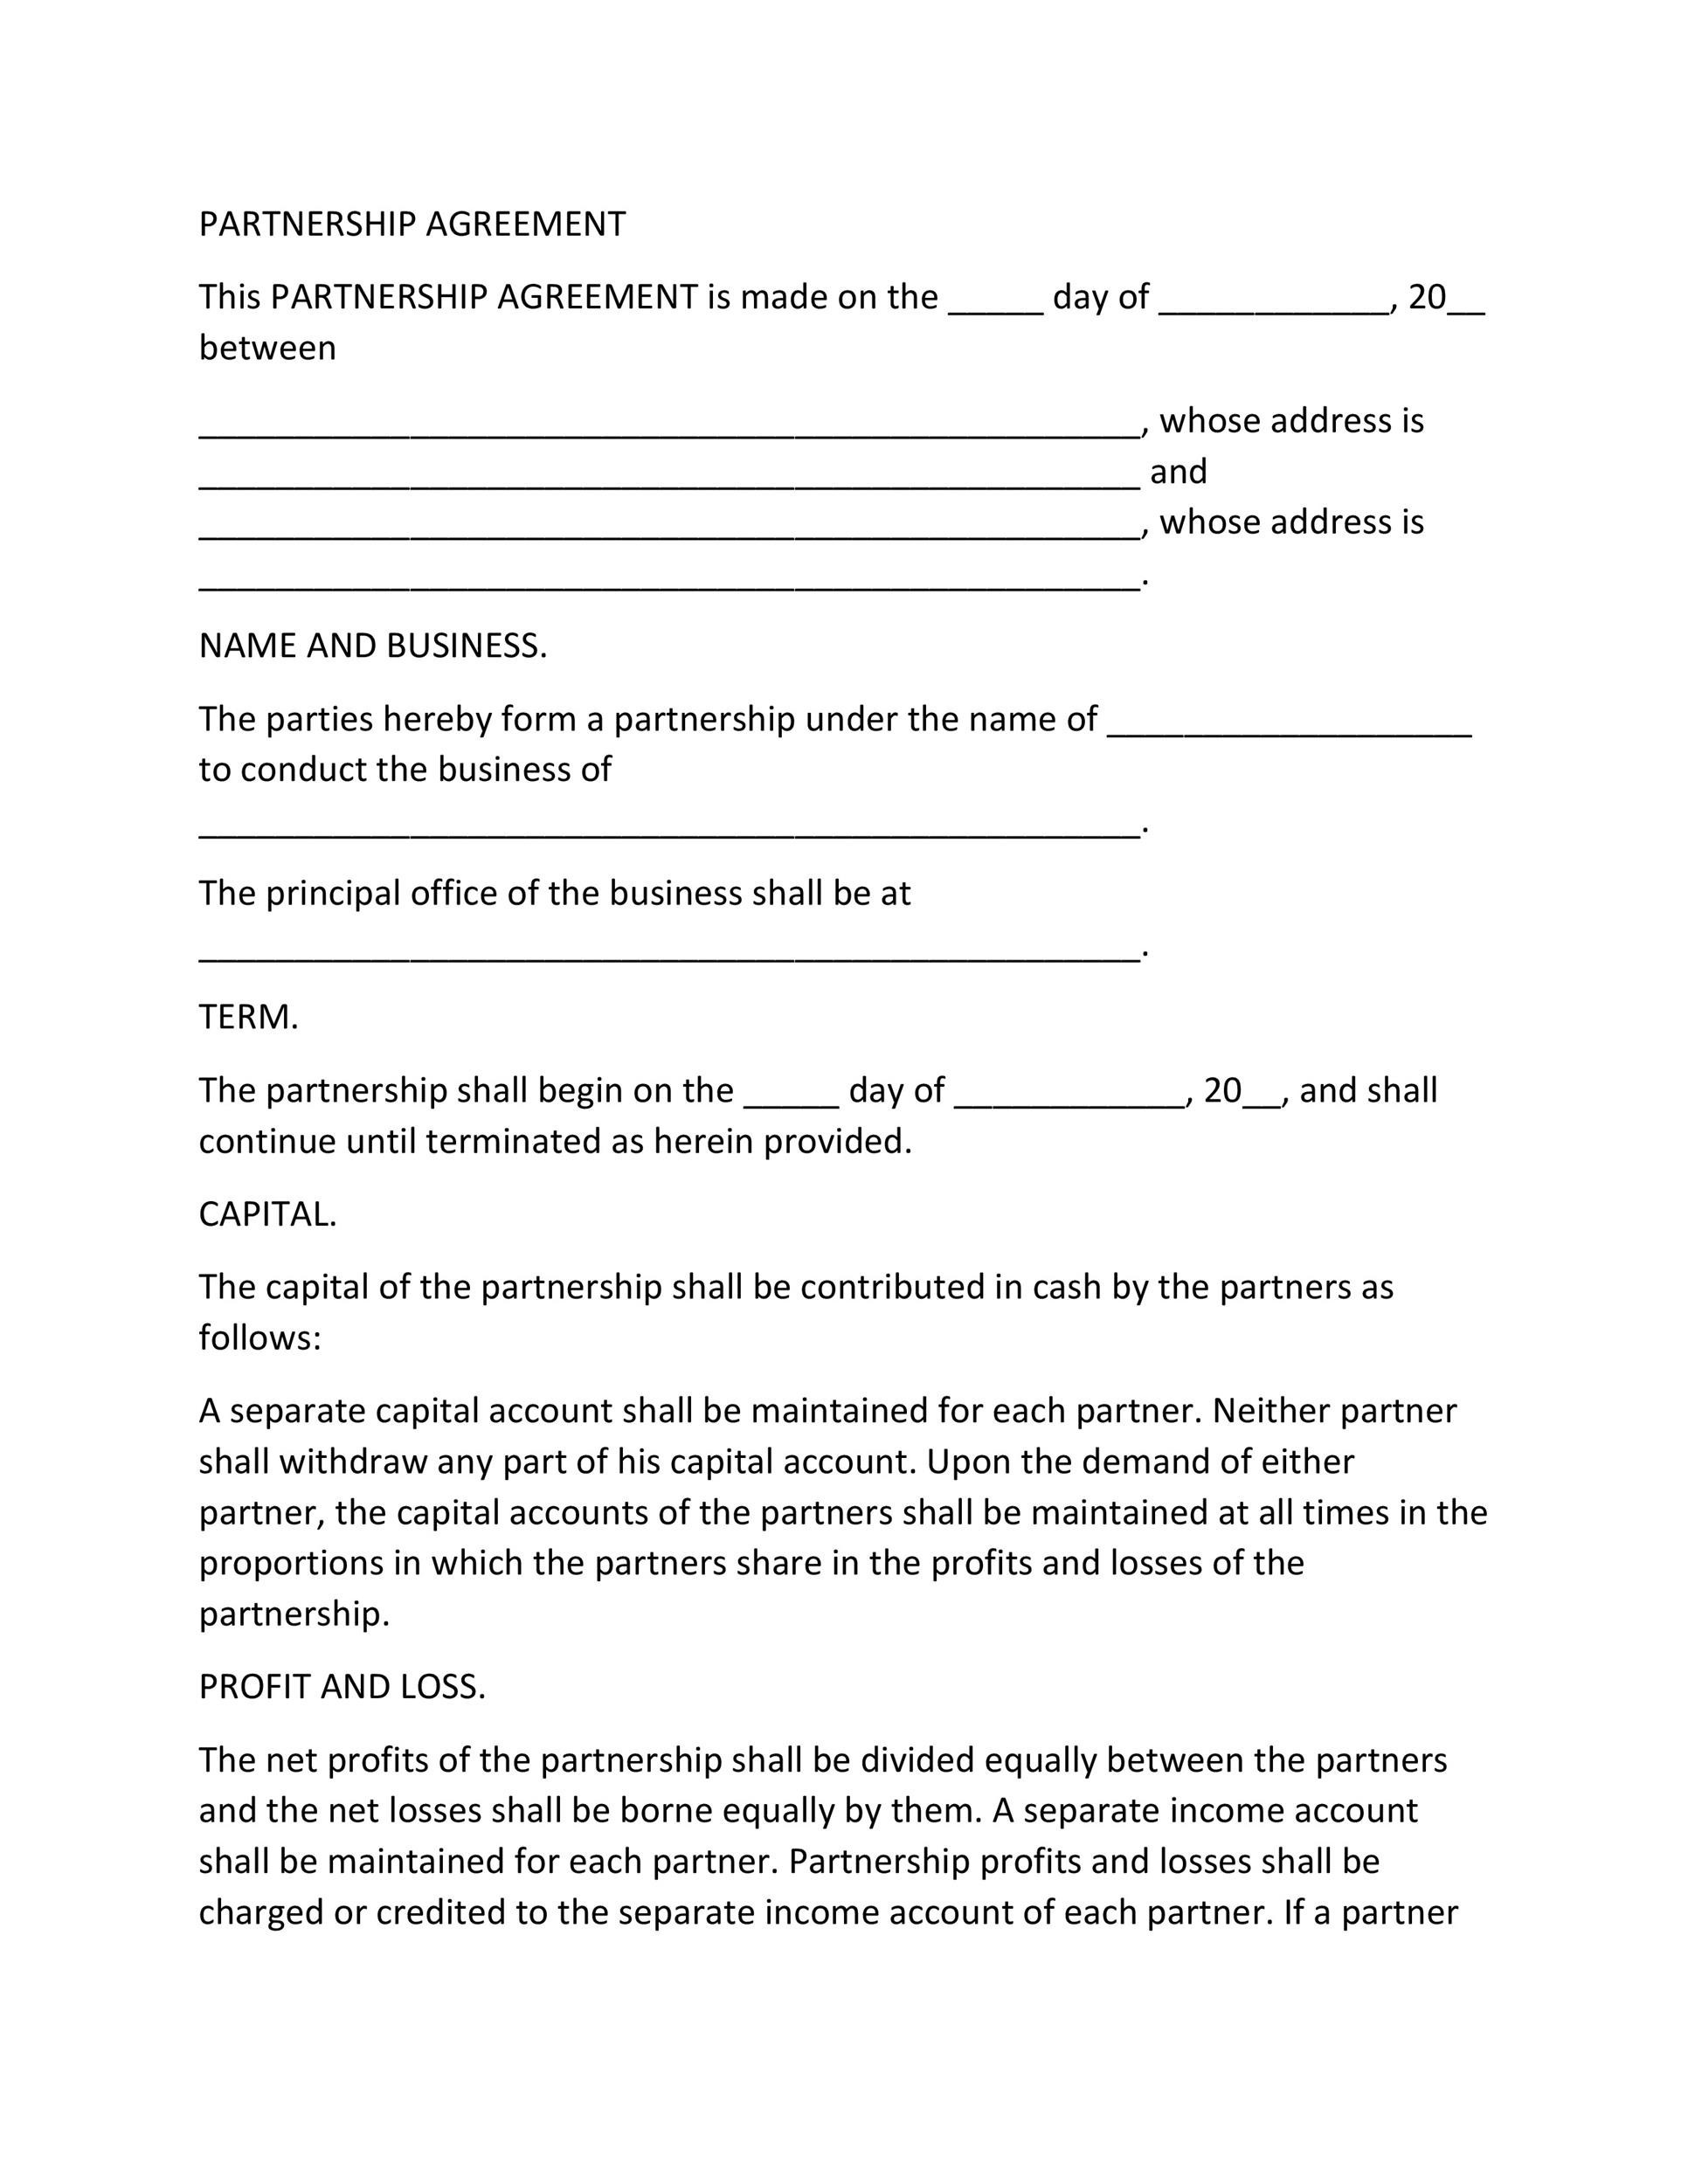 Free Partnership Agreement Template 08